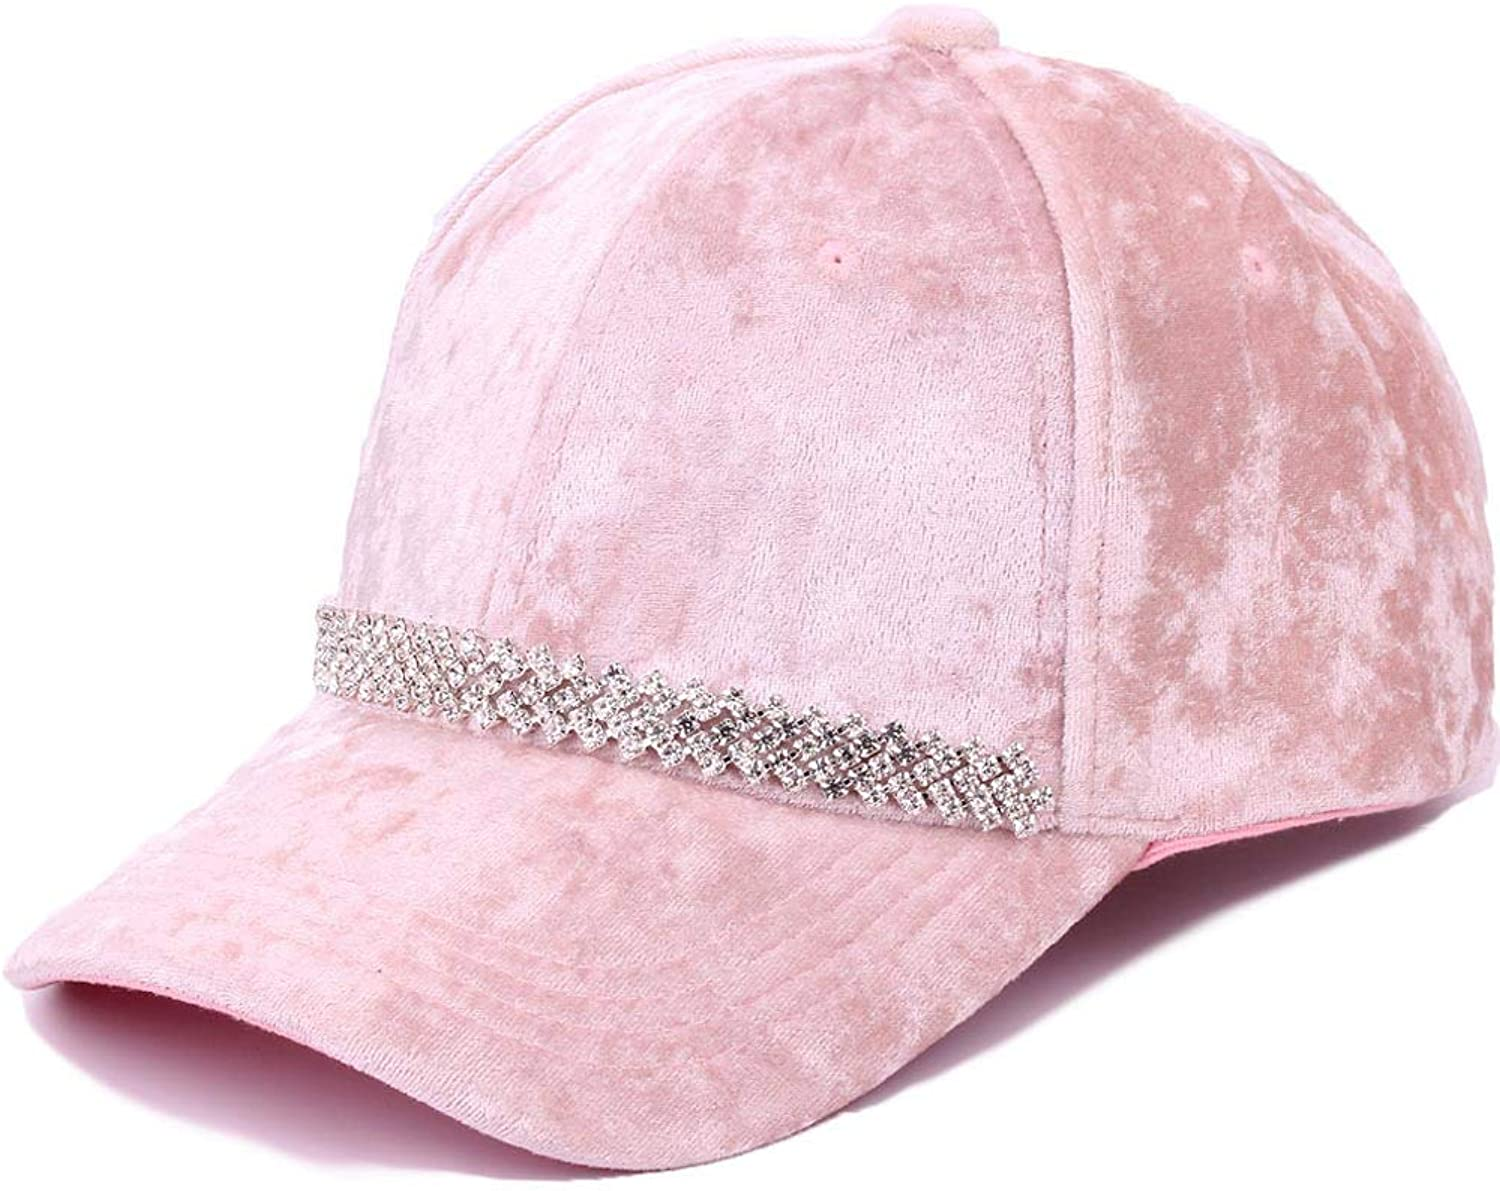 Velvet Cap, Women Adjustable Winter Warm Baseball Caps Casual Fashion Outdoor Sports Student Hat (5660cm),Pink